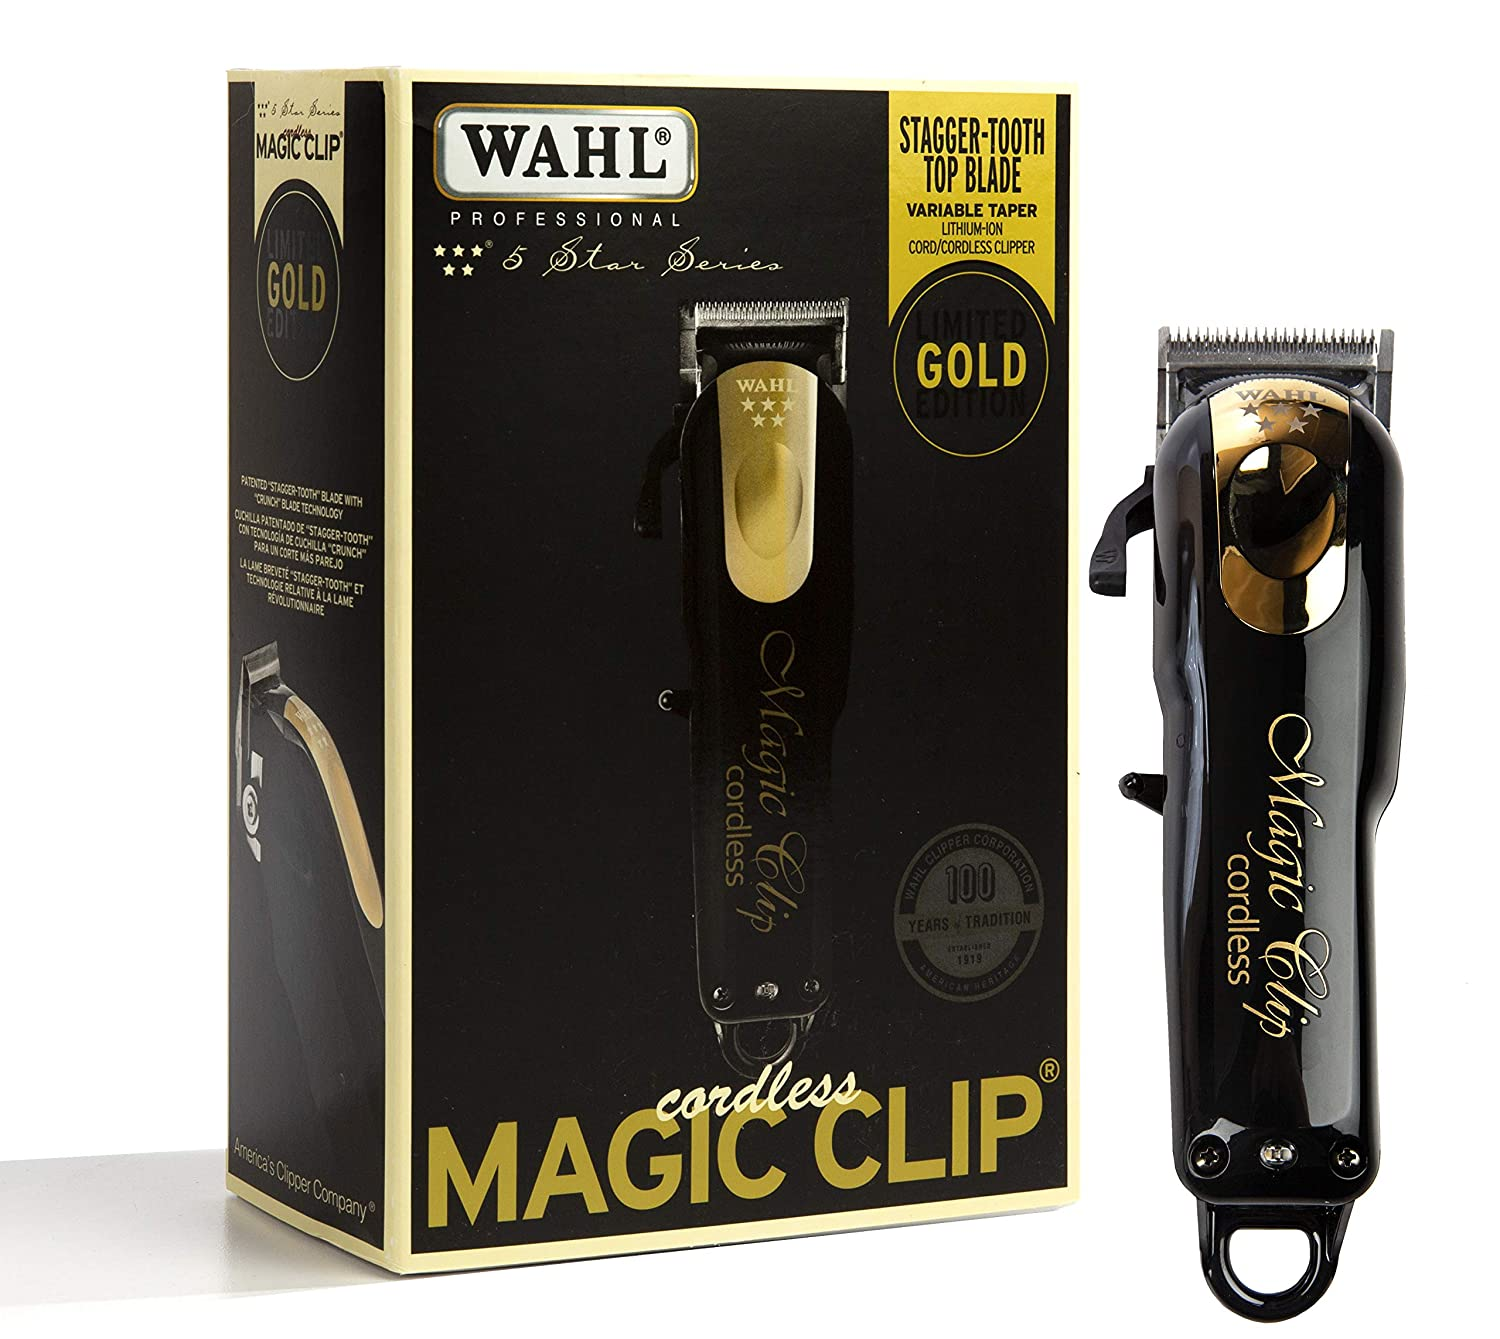 Wahl Professional 5-Star Limited Edition Black Gold Cordless Magic Clip 8148-100 Great for Barbers and Stylists Precision Cordless Fade Clipper Loaded with Features